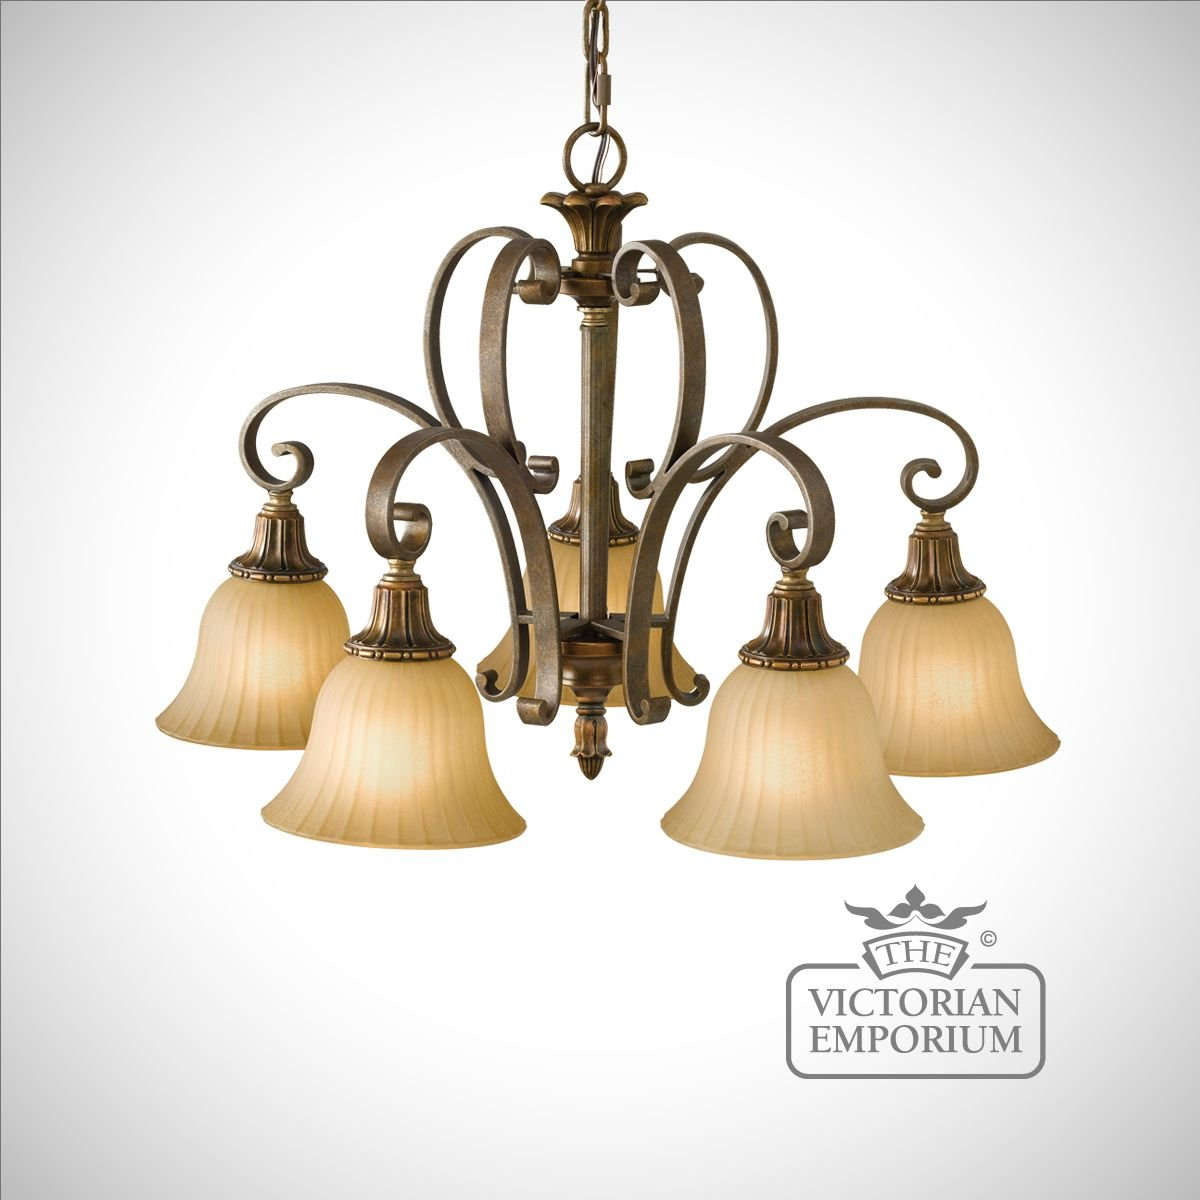 Gold and bronze 5 light chandelier ceiling chandeliers - Chandelier ceiling lamp ...